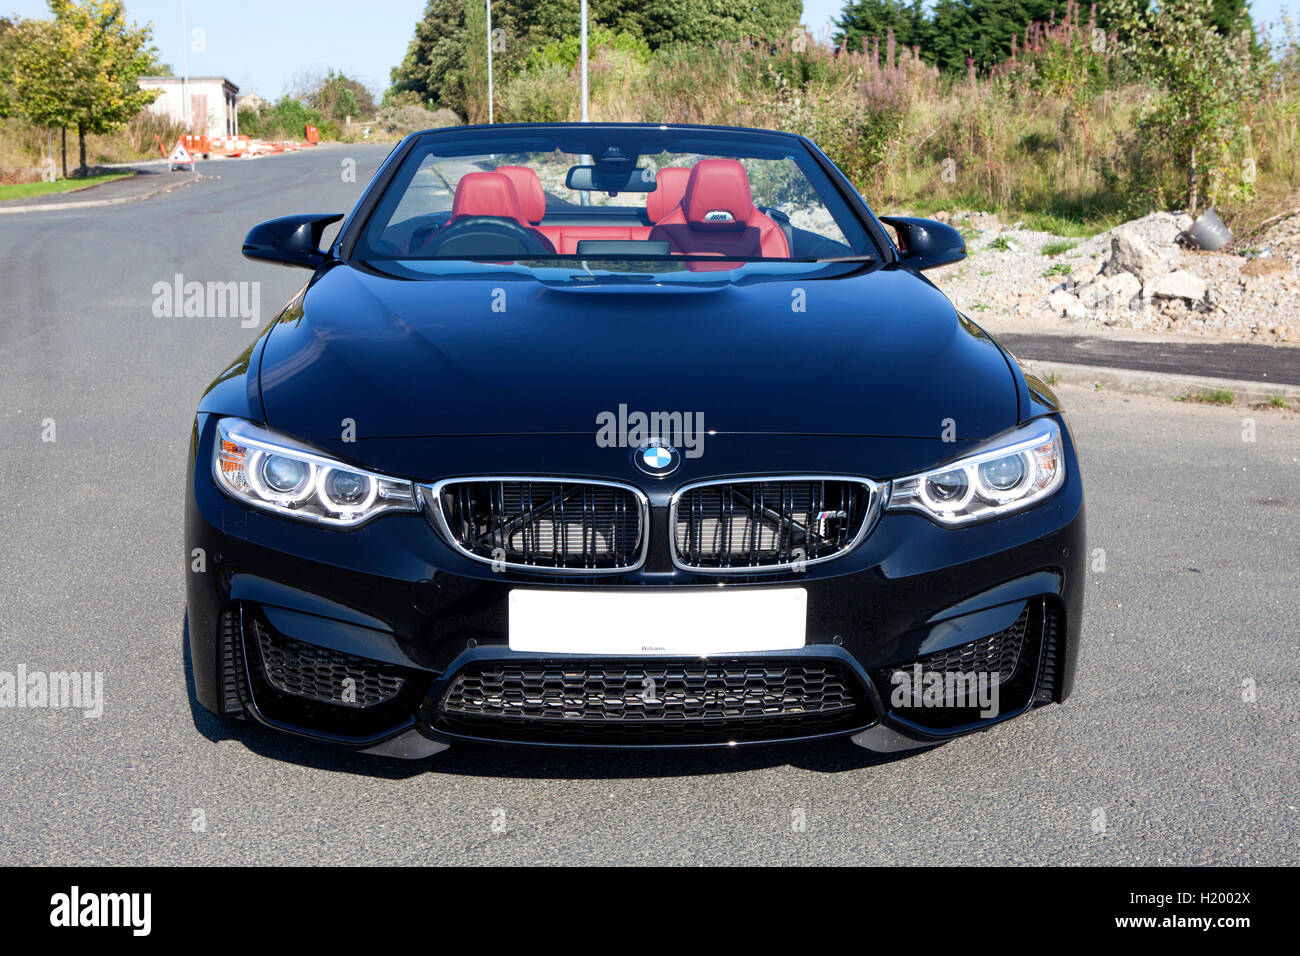 black f83 2016 bmw m4 convertible 2 door high performance sports car stock photo 121701970 alamy. Black Bedroom Furniture Sets. Home Design Ideas